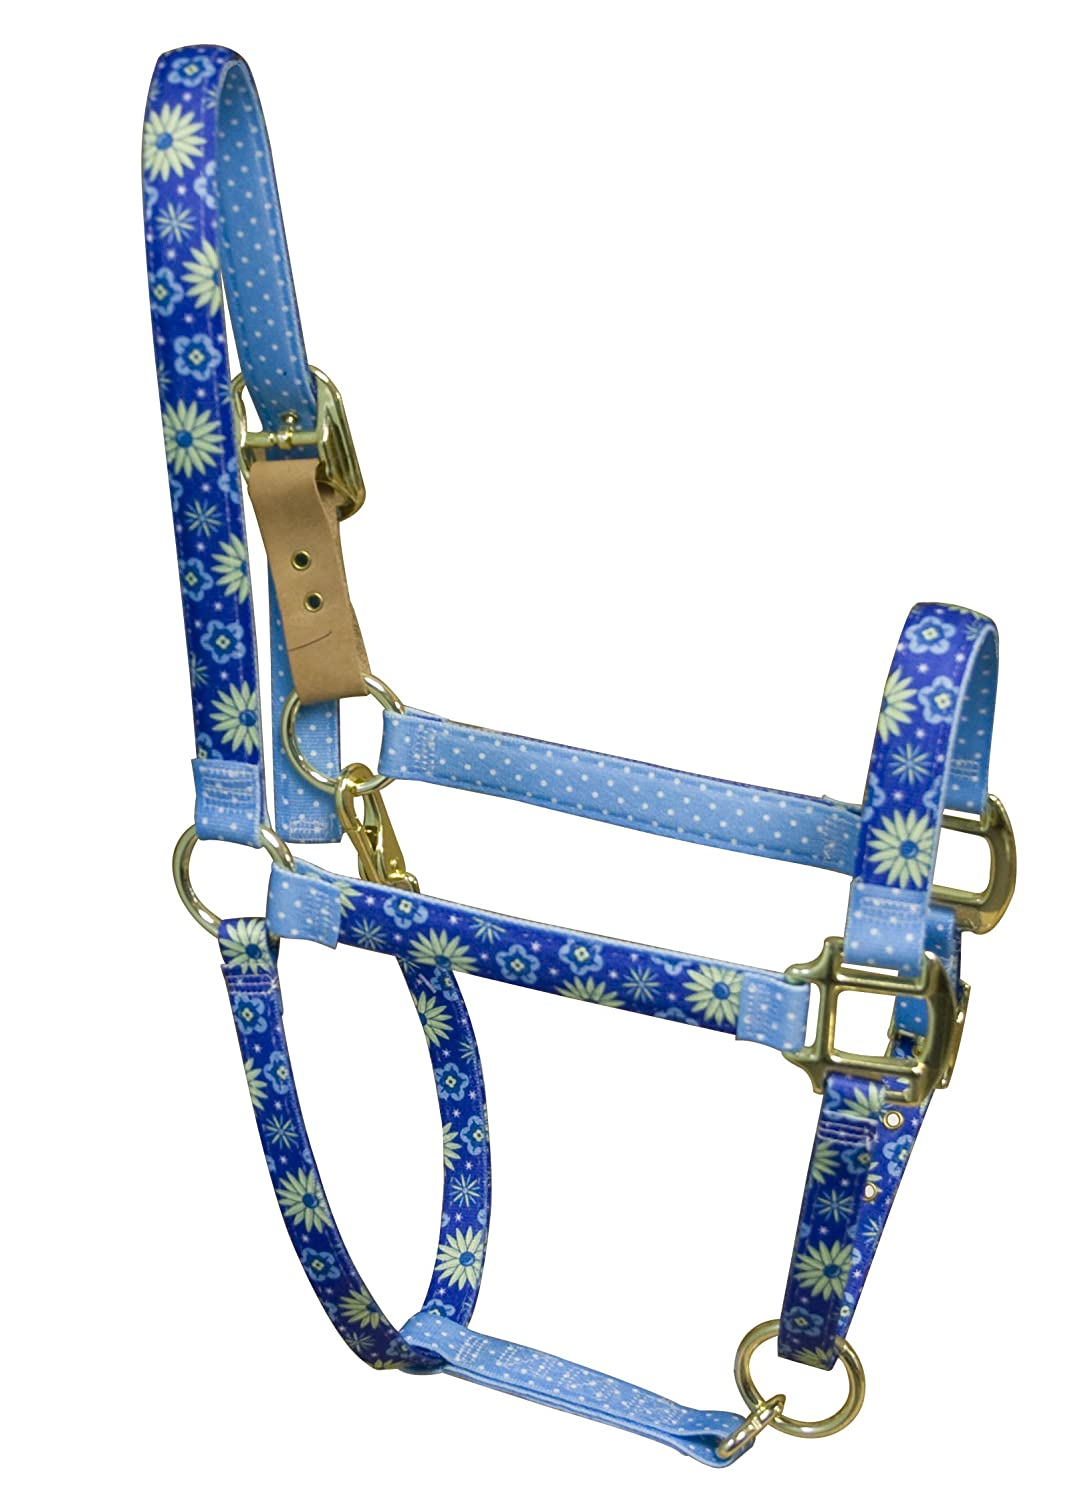 Red Haute Horse TEF1201 P High Fashion Horse Horse Halter, Teal Flowers